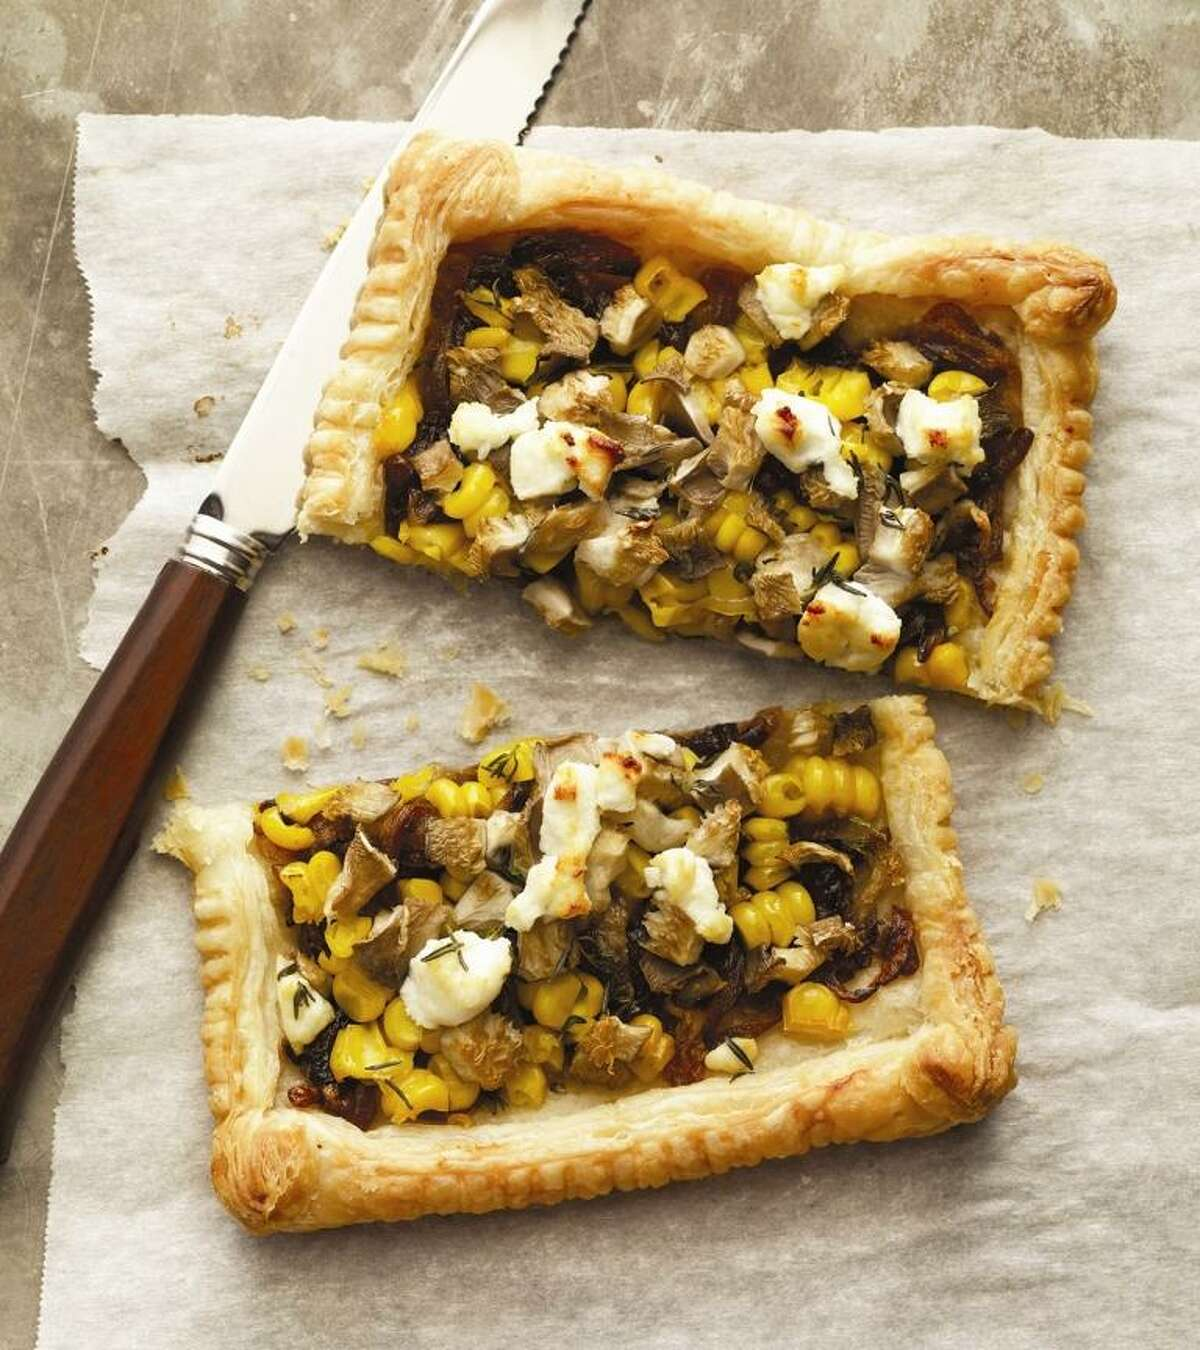 Oyster Mushroom and Corn Tart from Eat Your Vegetables: Bold Recipes for the Single Cook, by Joe Yonan